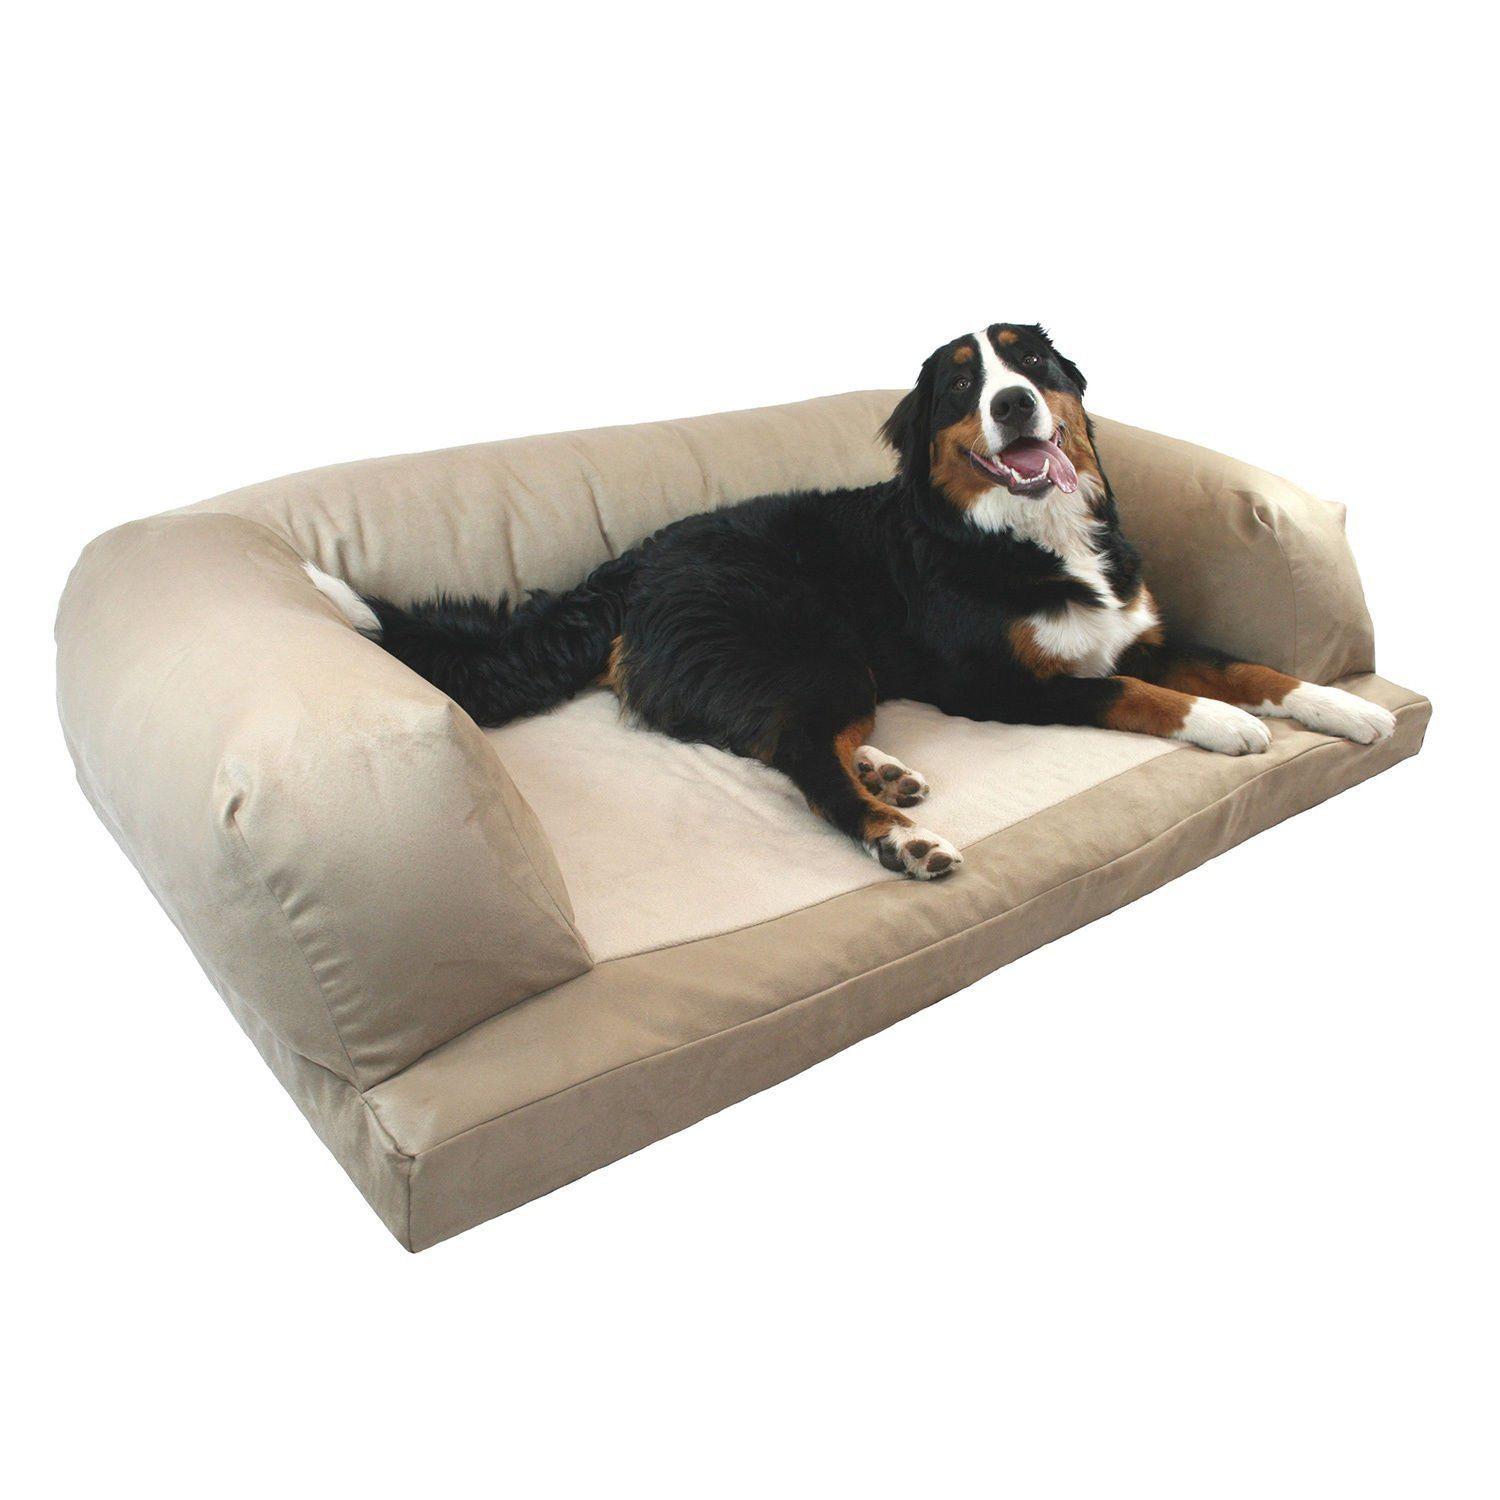 small stair large for dog translatorbox dogs beds stairs big bed doggie in